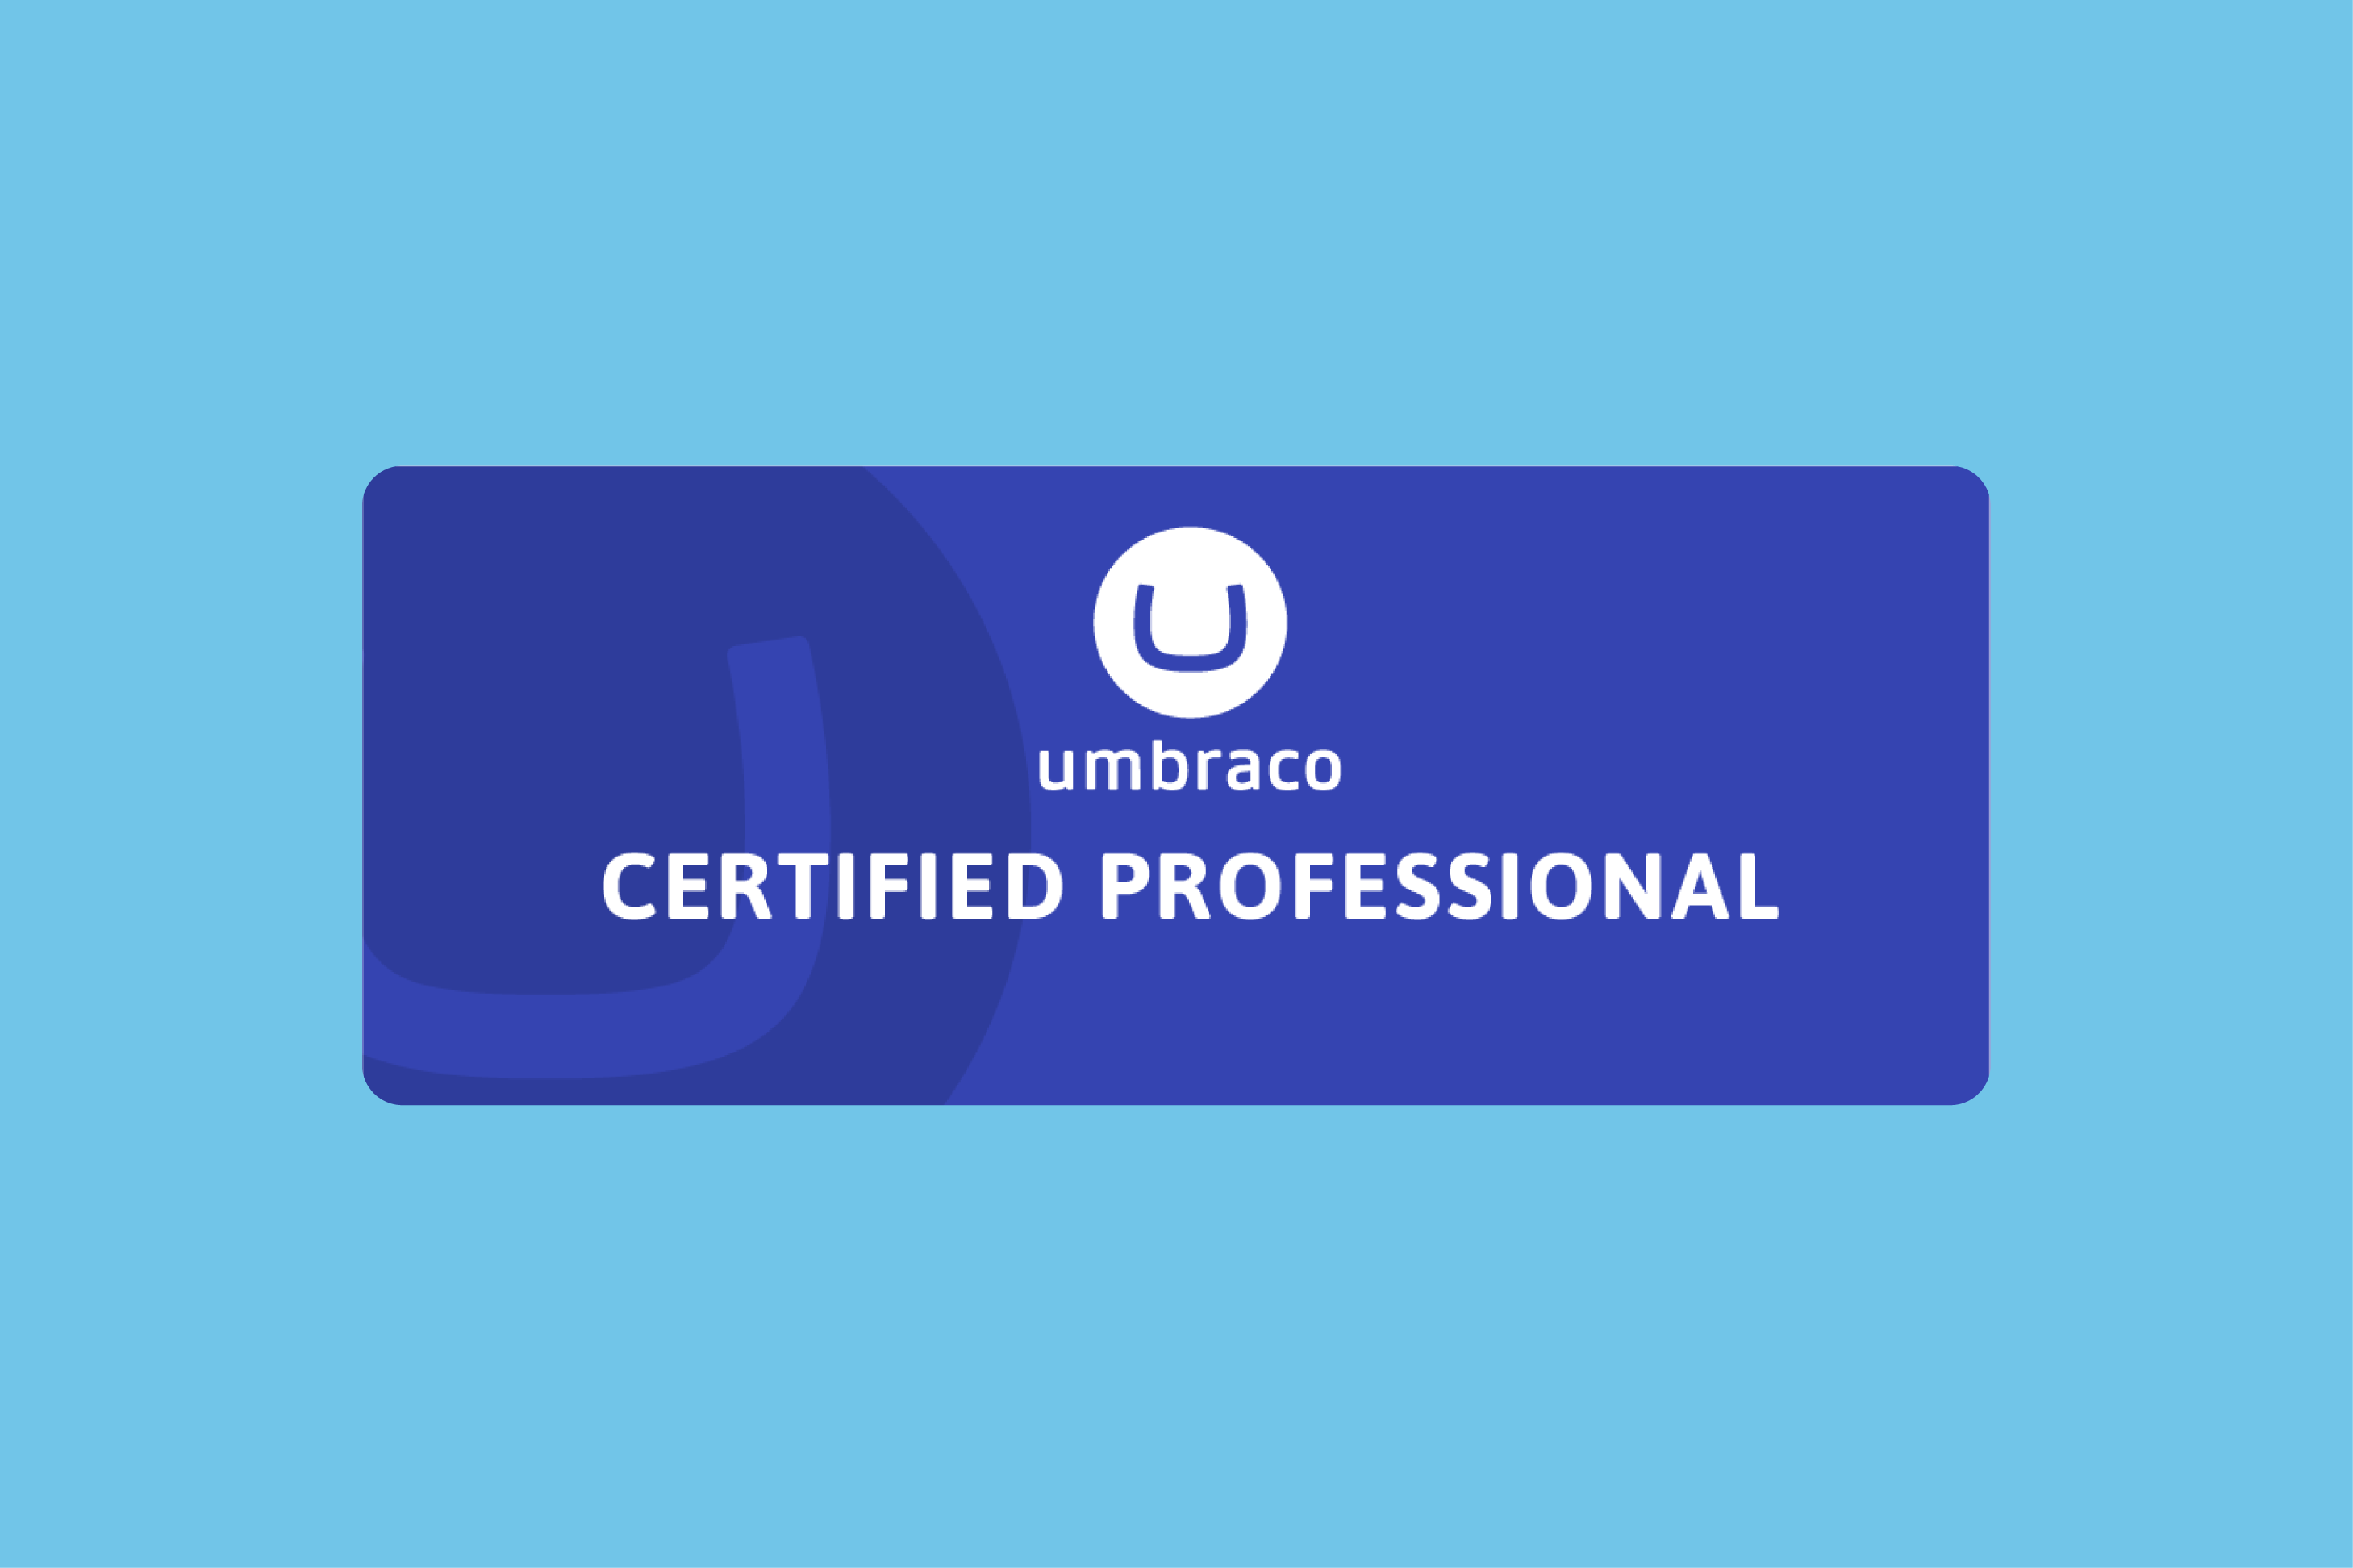 Jake becomes an Umbraco certified professional